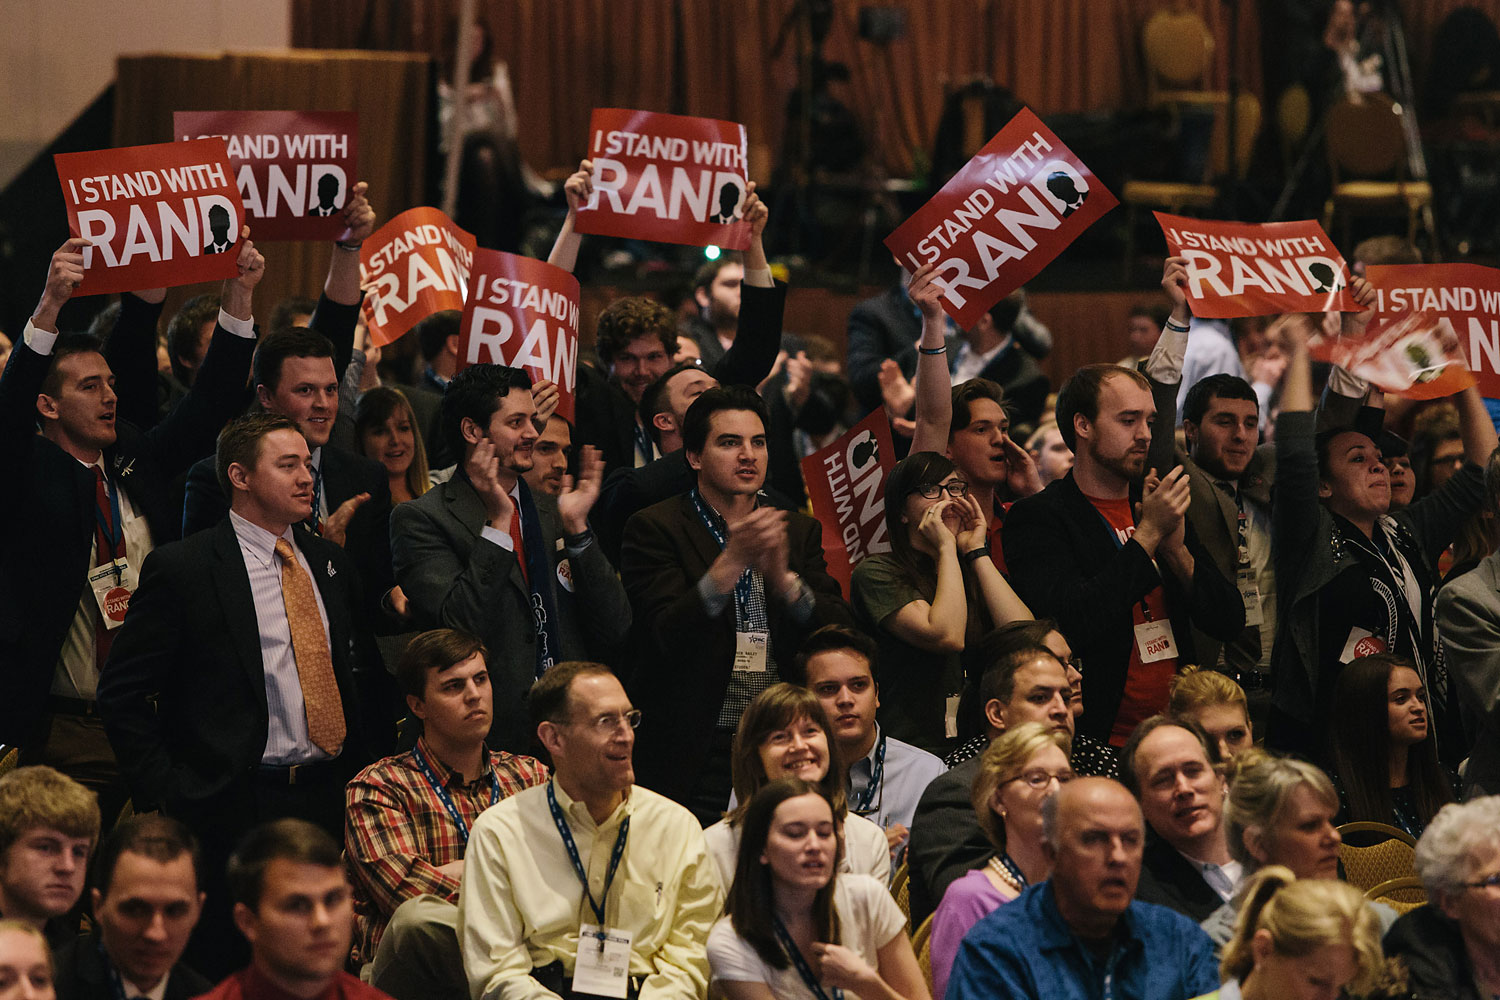 Rand Paul supporters stand and cheer when the results of a straw poll show Rand Paul winning the GOP Presidential nomination during the final day of the Conservative Political Action Conference (CPAC) at the Gaylord National Resort & Convention Center in National Harbor, Md.